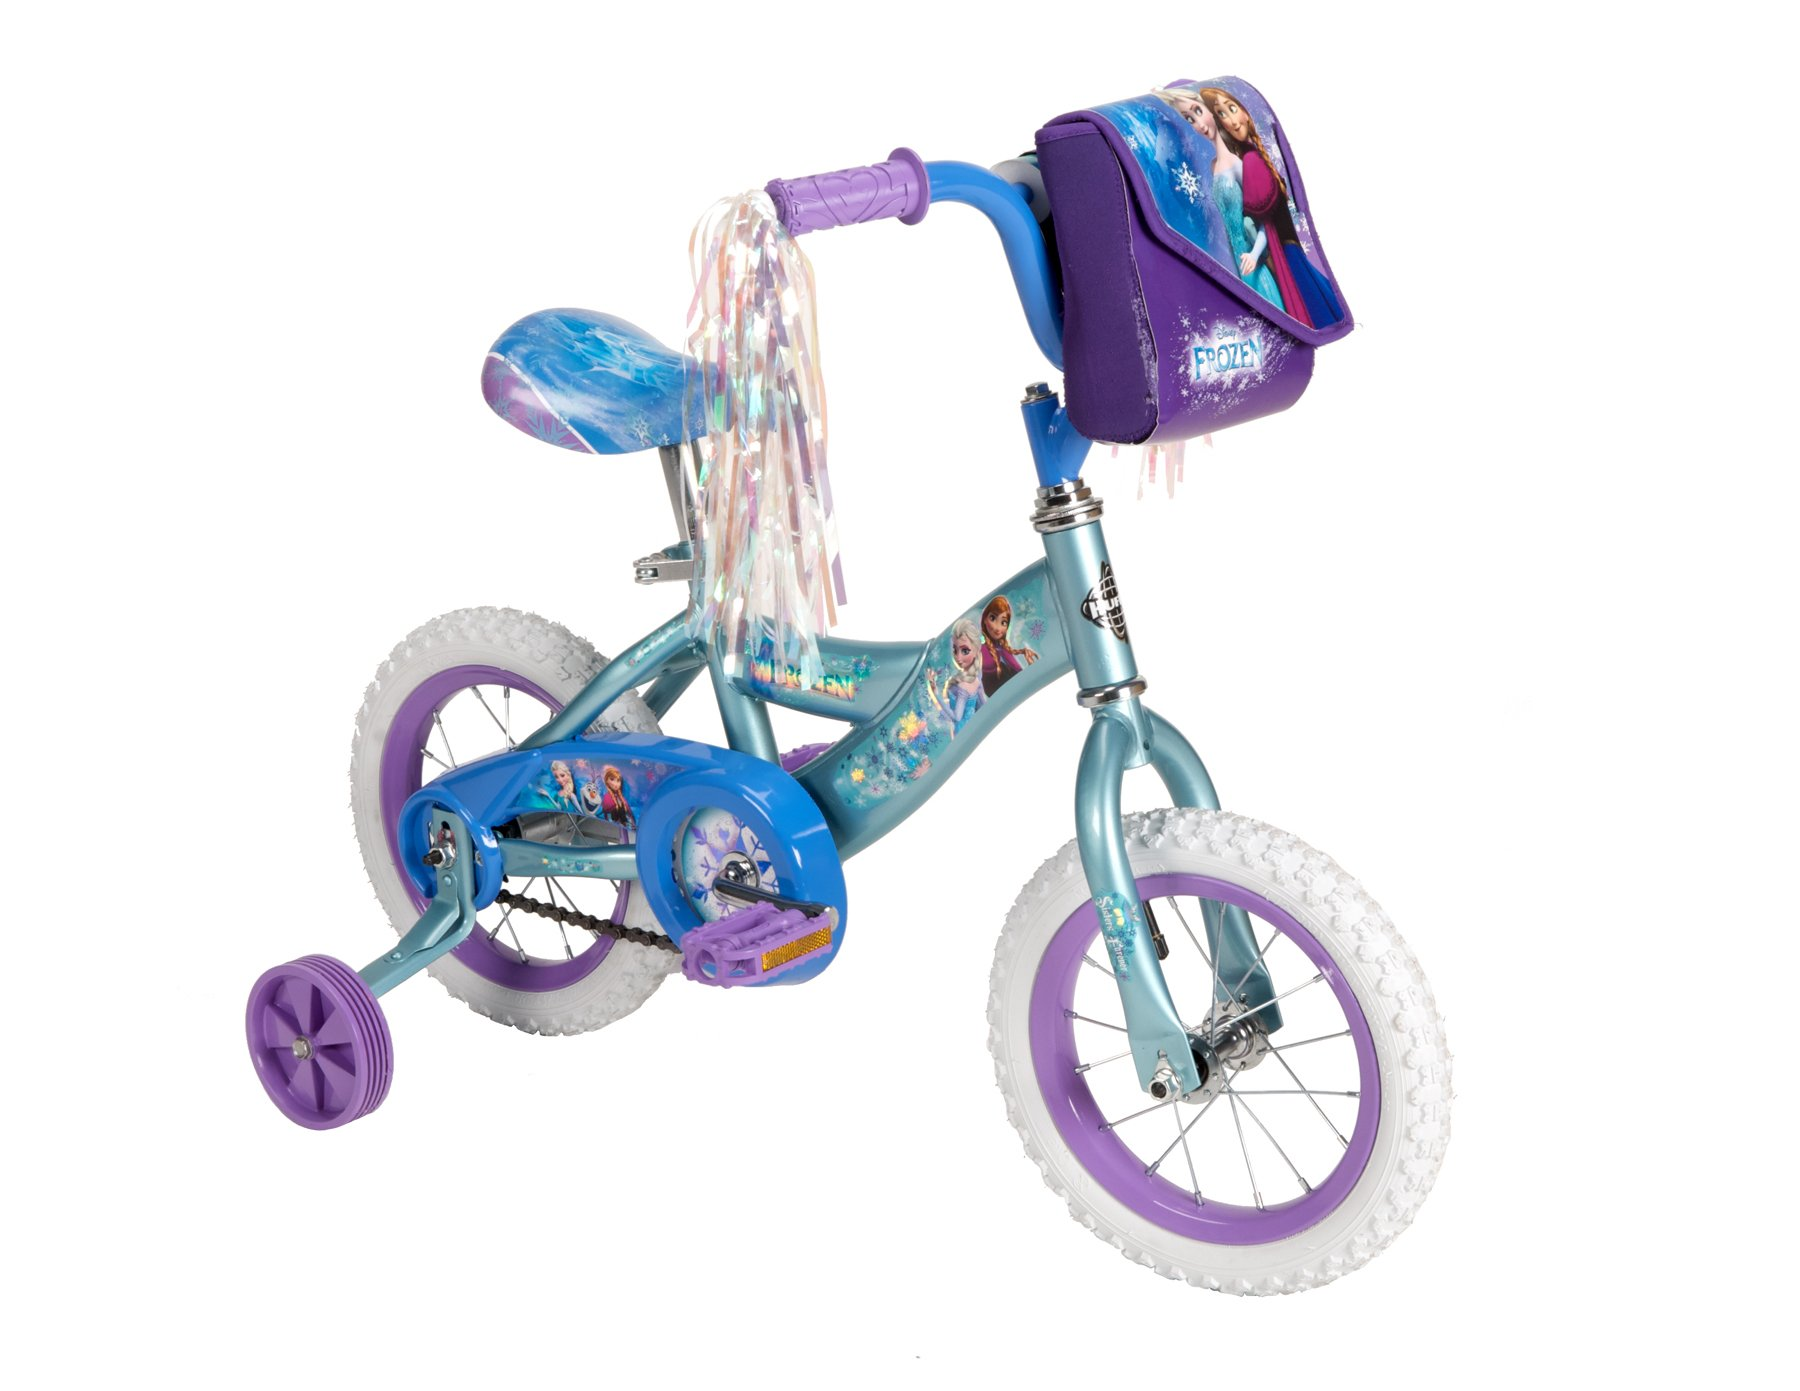 Disney Frozen 12-inch Bike by Huffy, Recommended for Ages 3-5 and a Rider Height of 37-42 inches, with Fun Graphics of Elsa, Anna, and Olaf, Style 22235